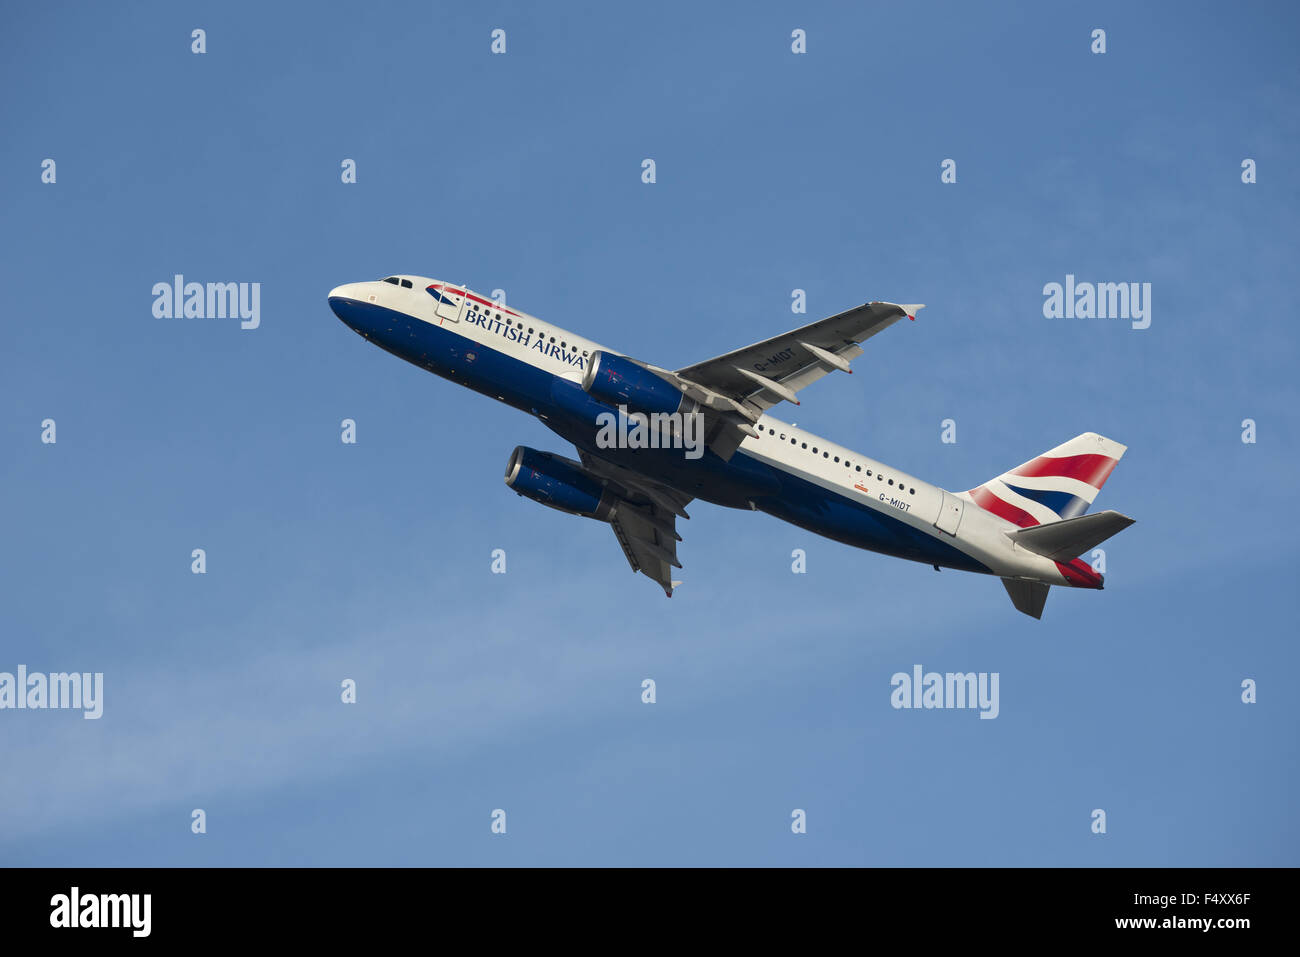 British Airways Airbus A320-232, climbing - Stock Image